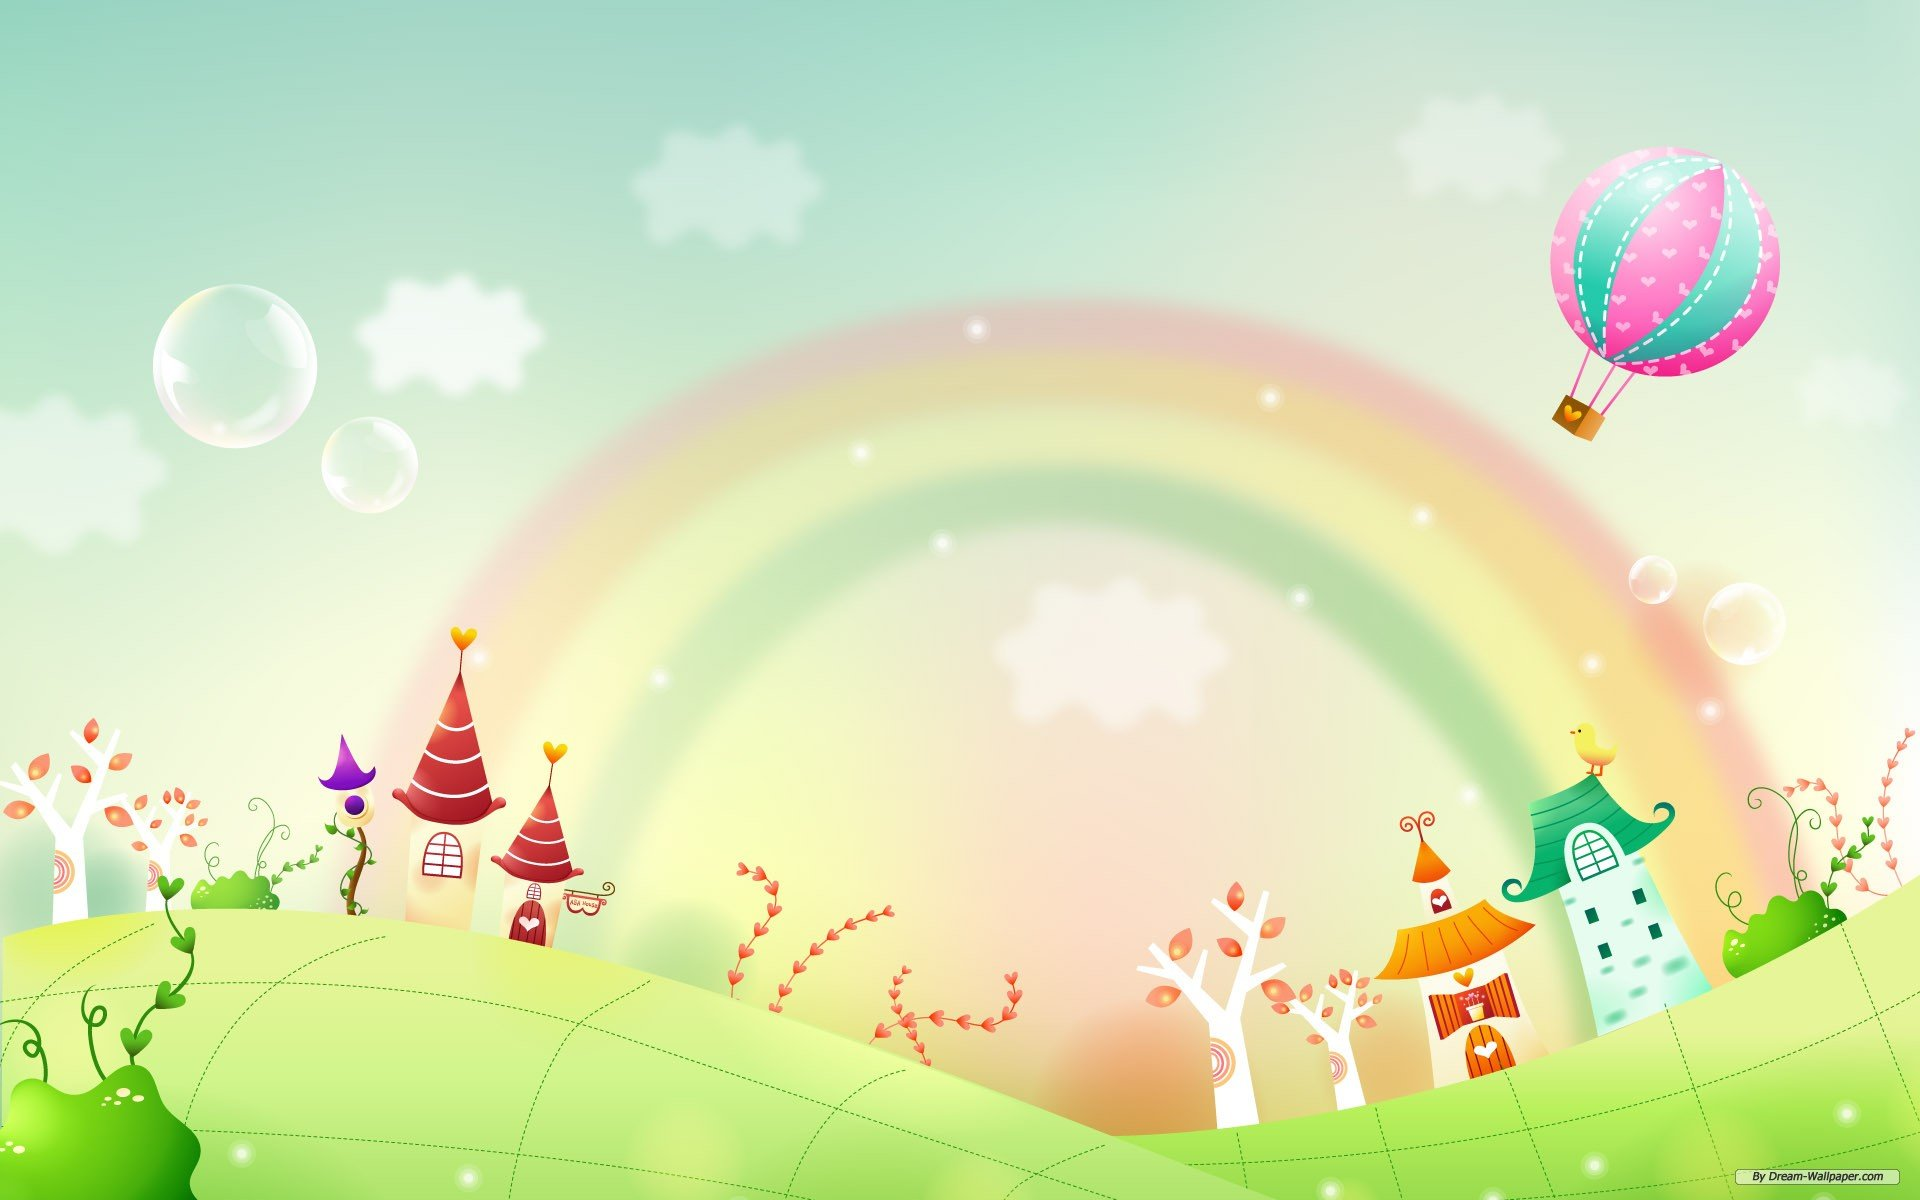 Fantasy clipart and backgrounds.